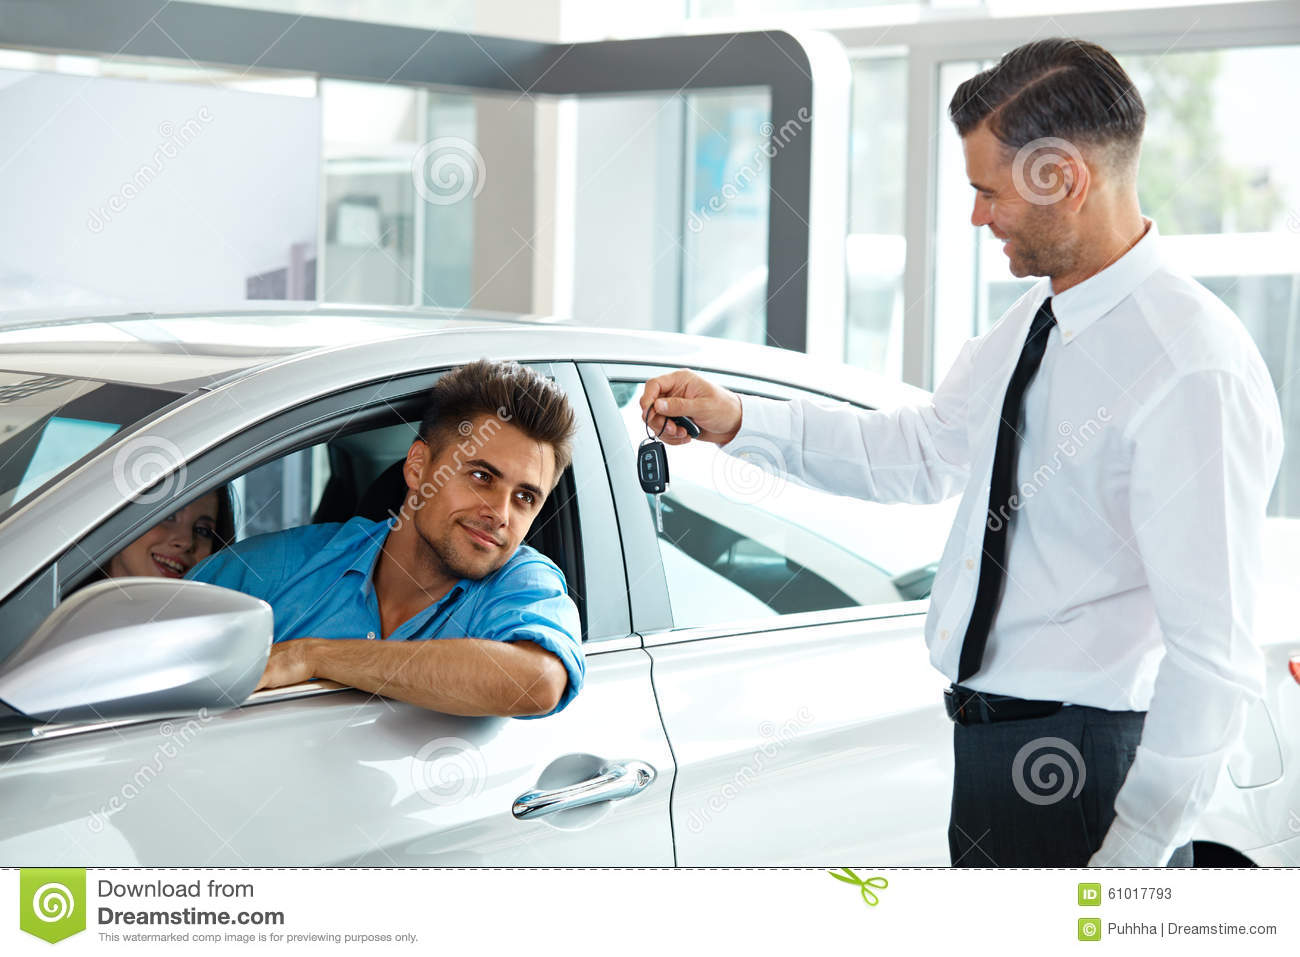 The Average Salary of a Car Salesman